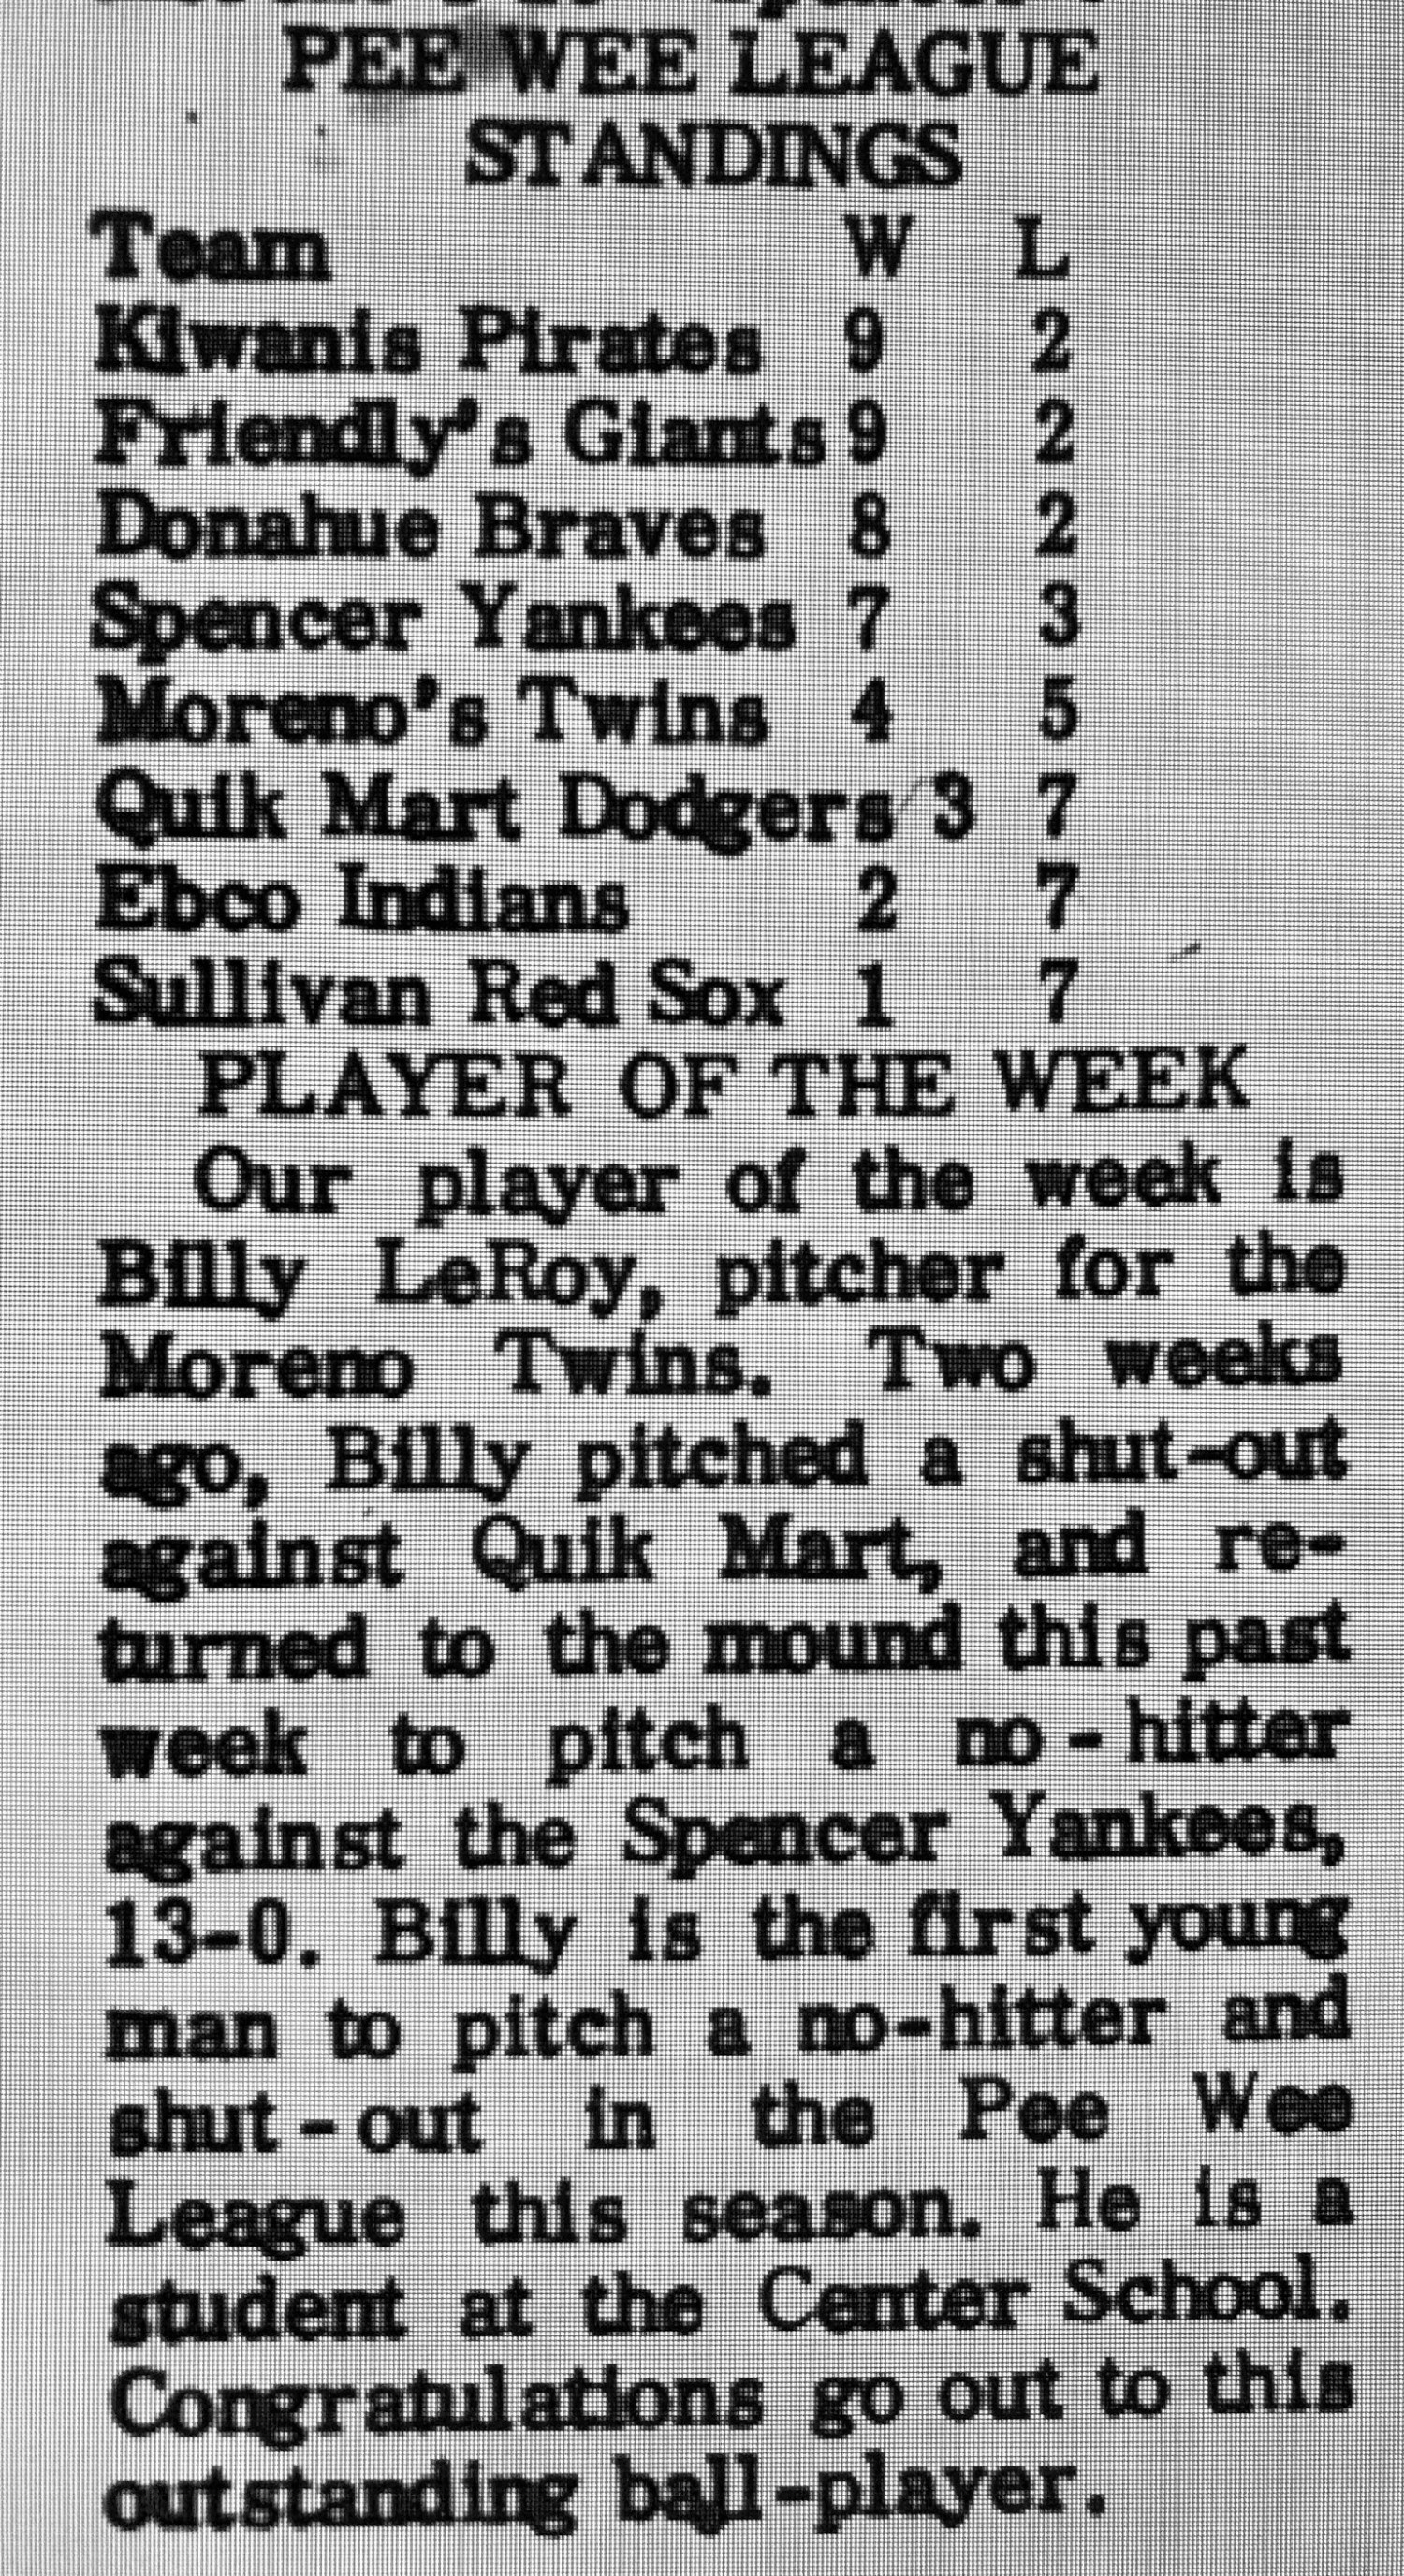 Sept. 1969 Pee Wee standings, Burlington MA